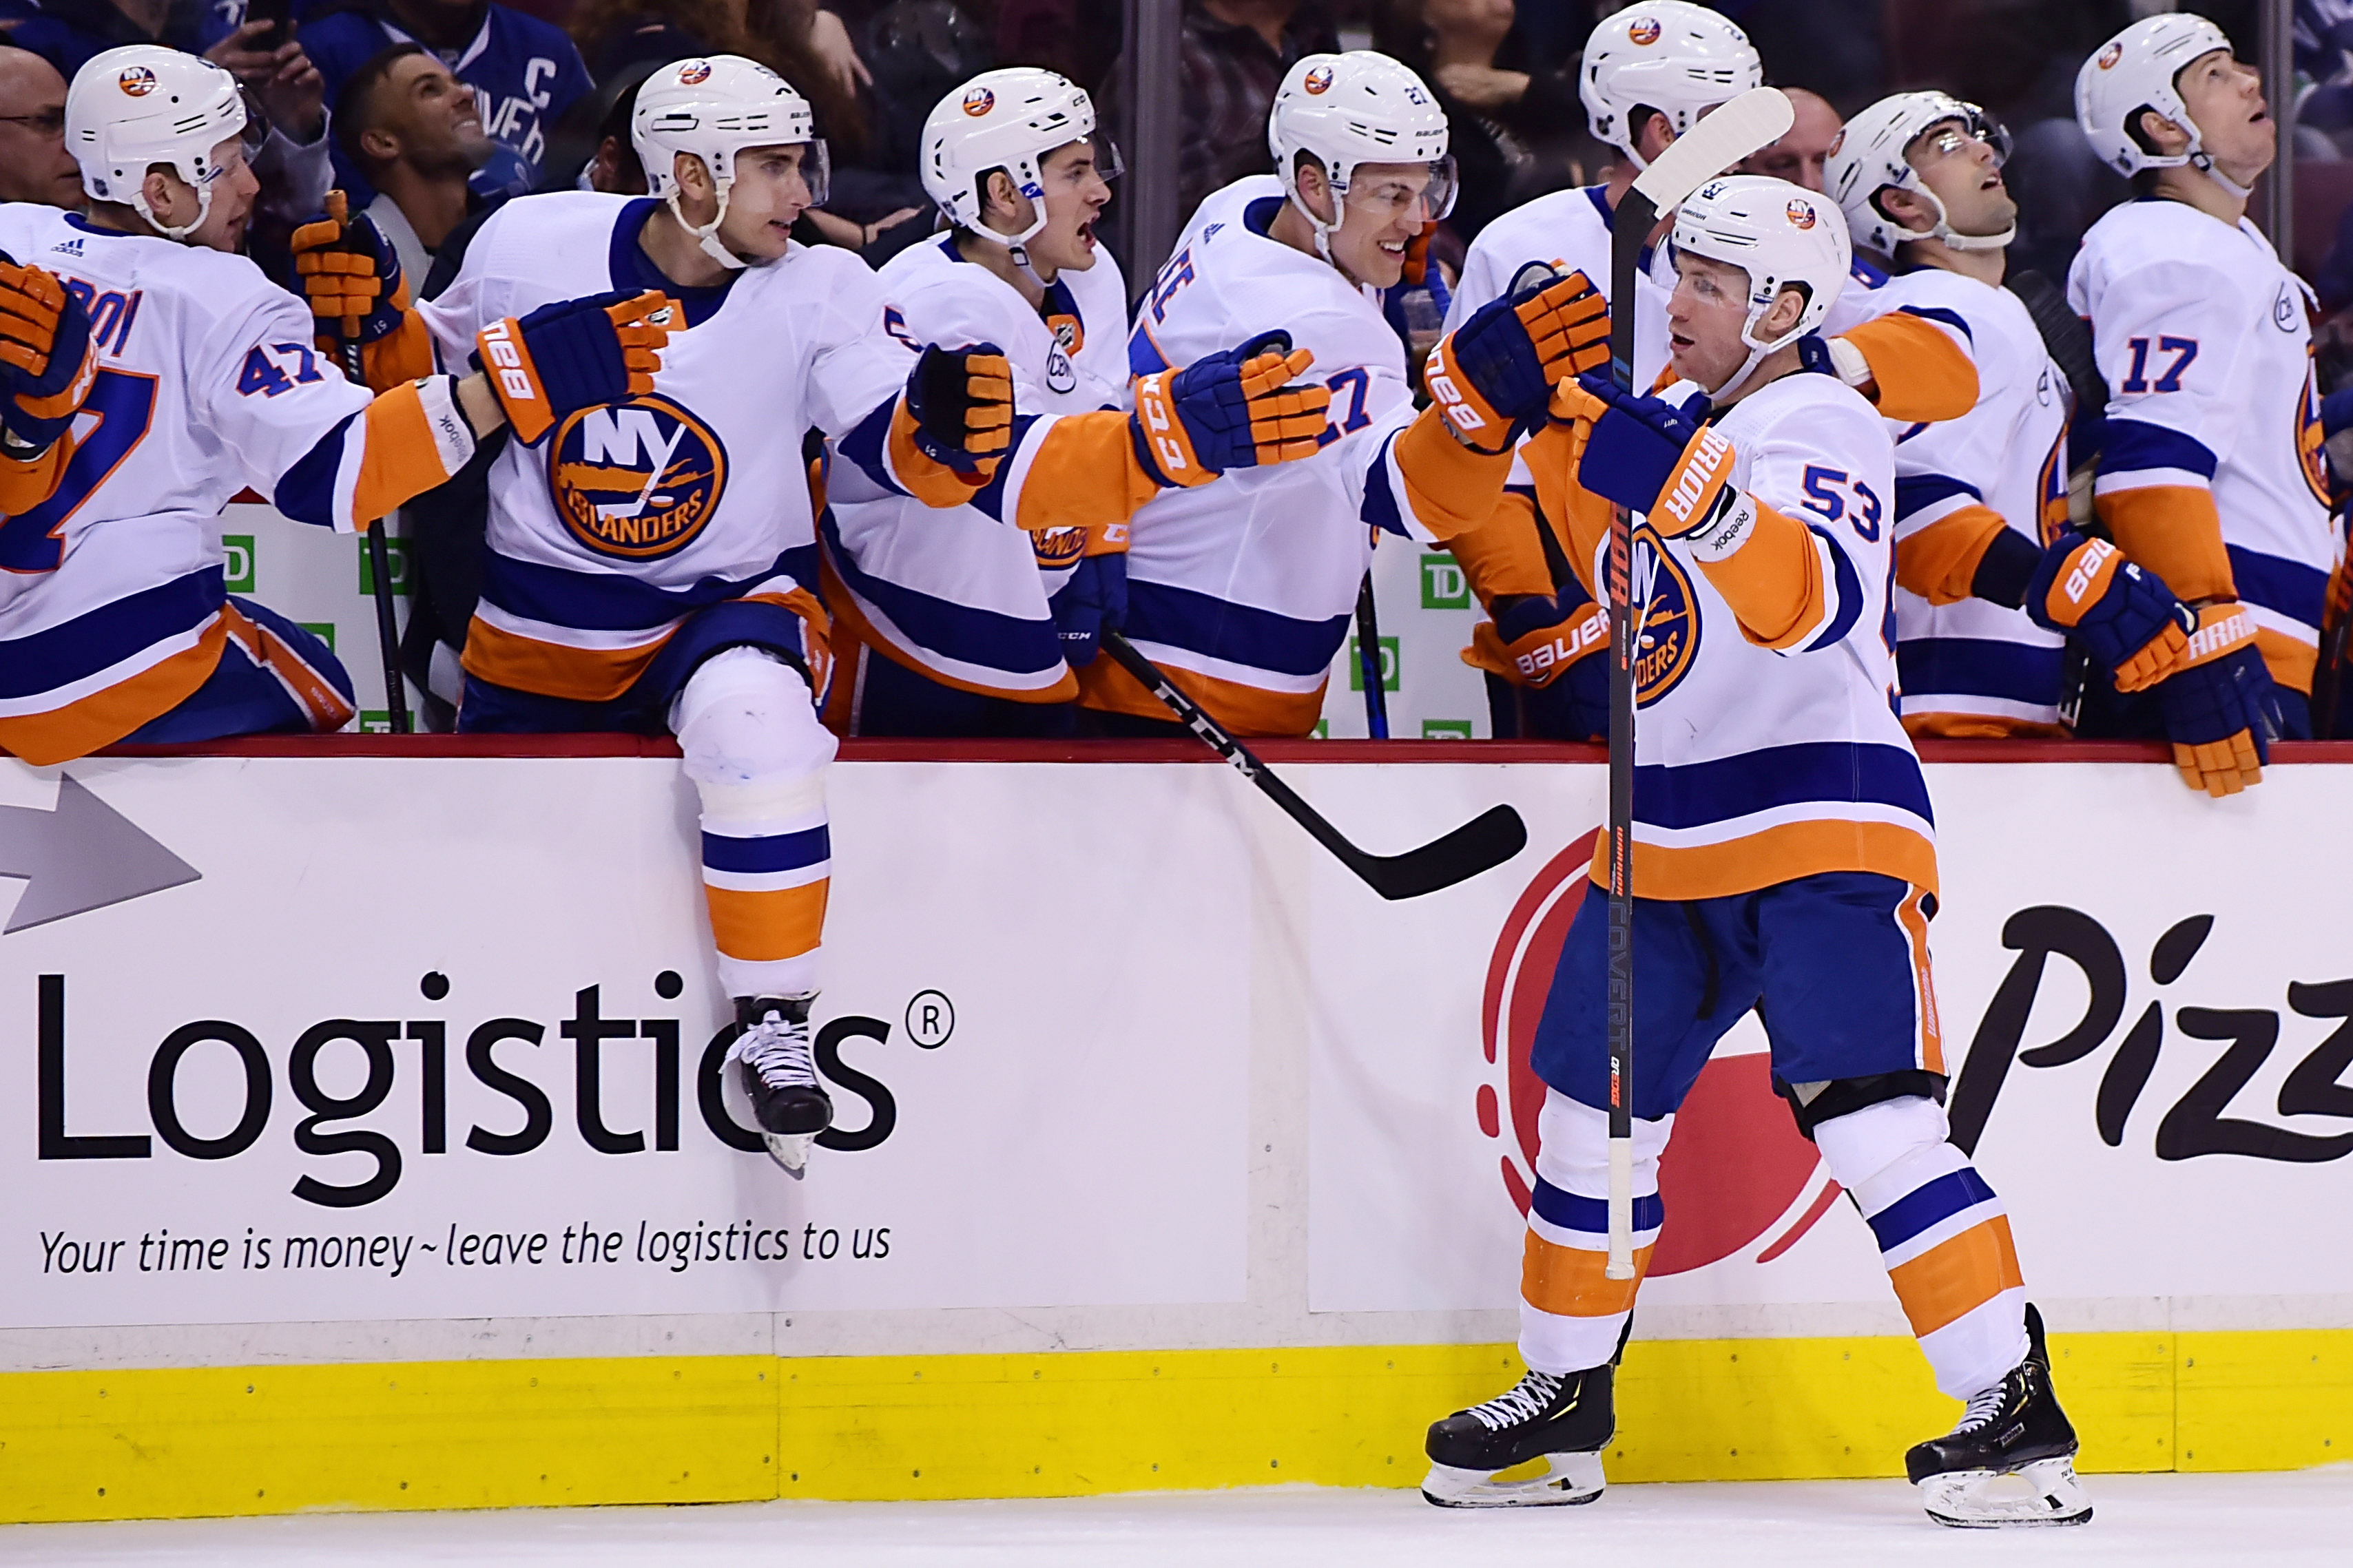 Feb 23, 2019; Vancouver, British Columbia, CAN; New York Islanders forward Casey Cizikas (53) celebrates his goal against the Vancouver Canucks during the first period at Rogers Arena. Mandatory Credit: Anne-Marie Sorvin-USA TODAY Sports